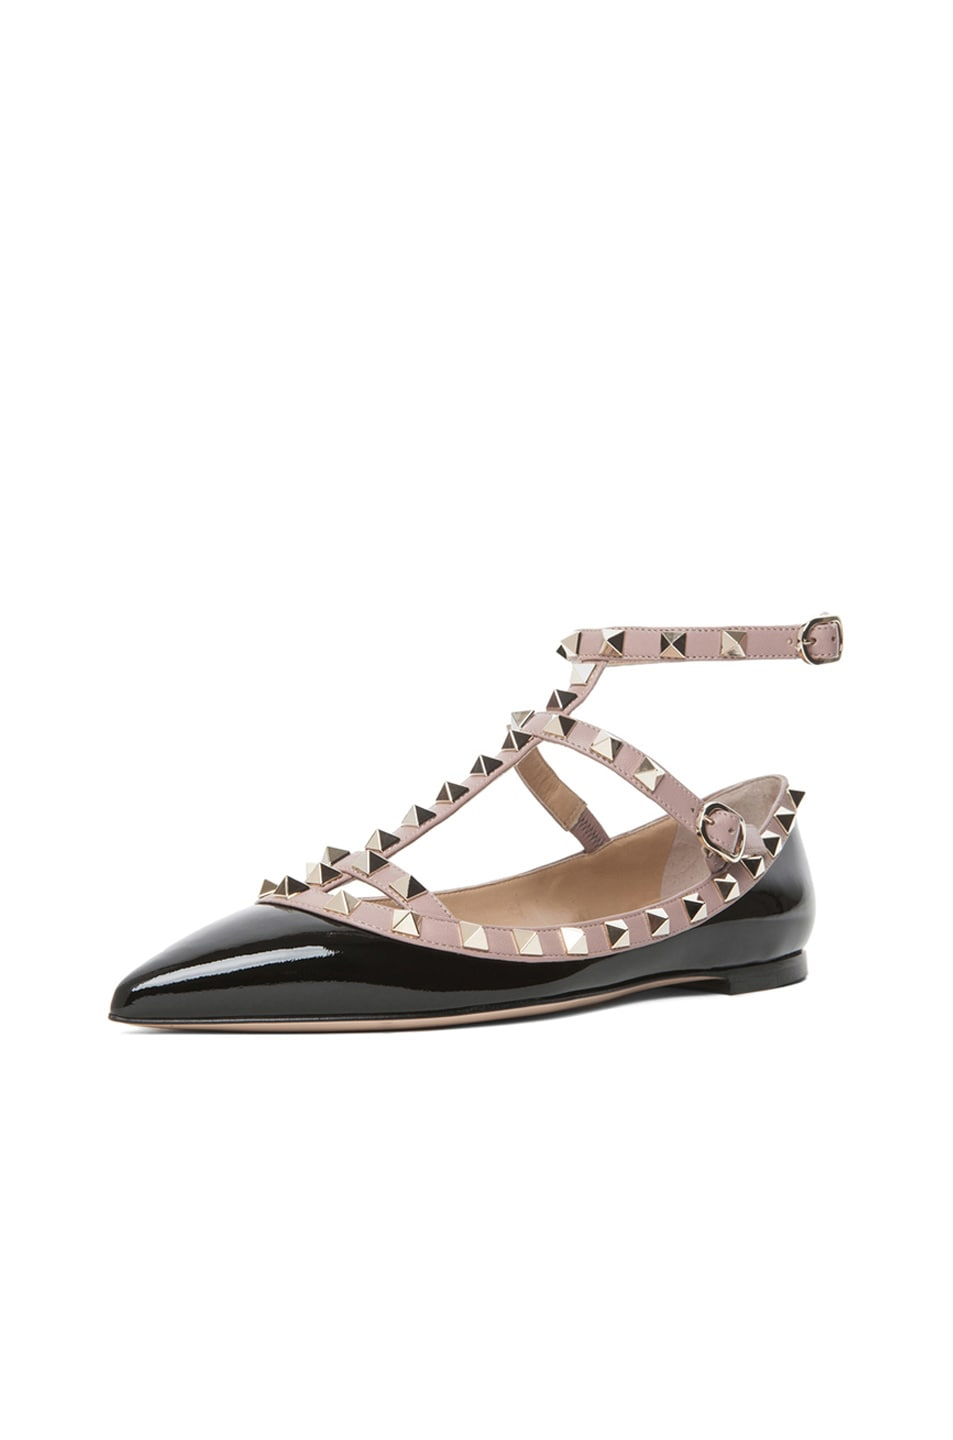 Image 2 of Valentino Rockstud Patent Cage Flats in Black & Nude